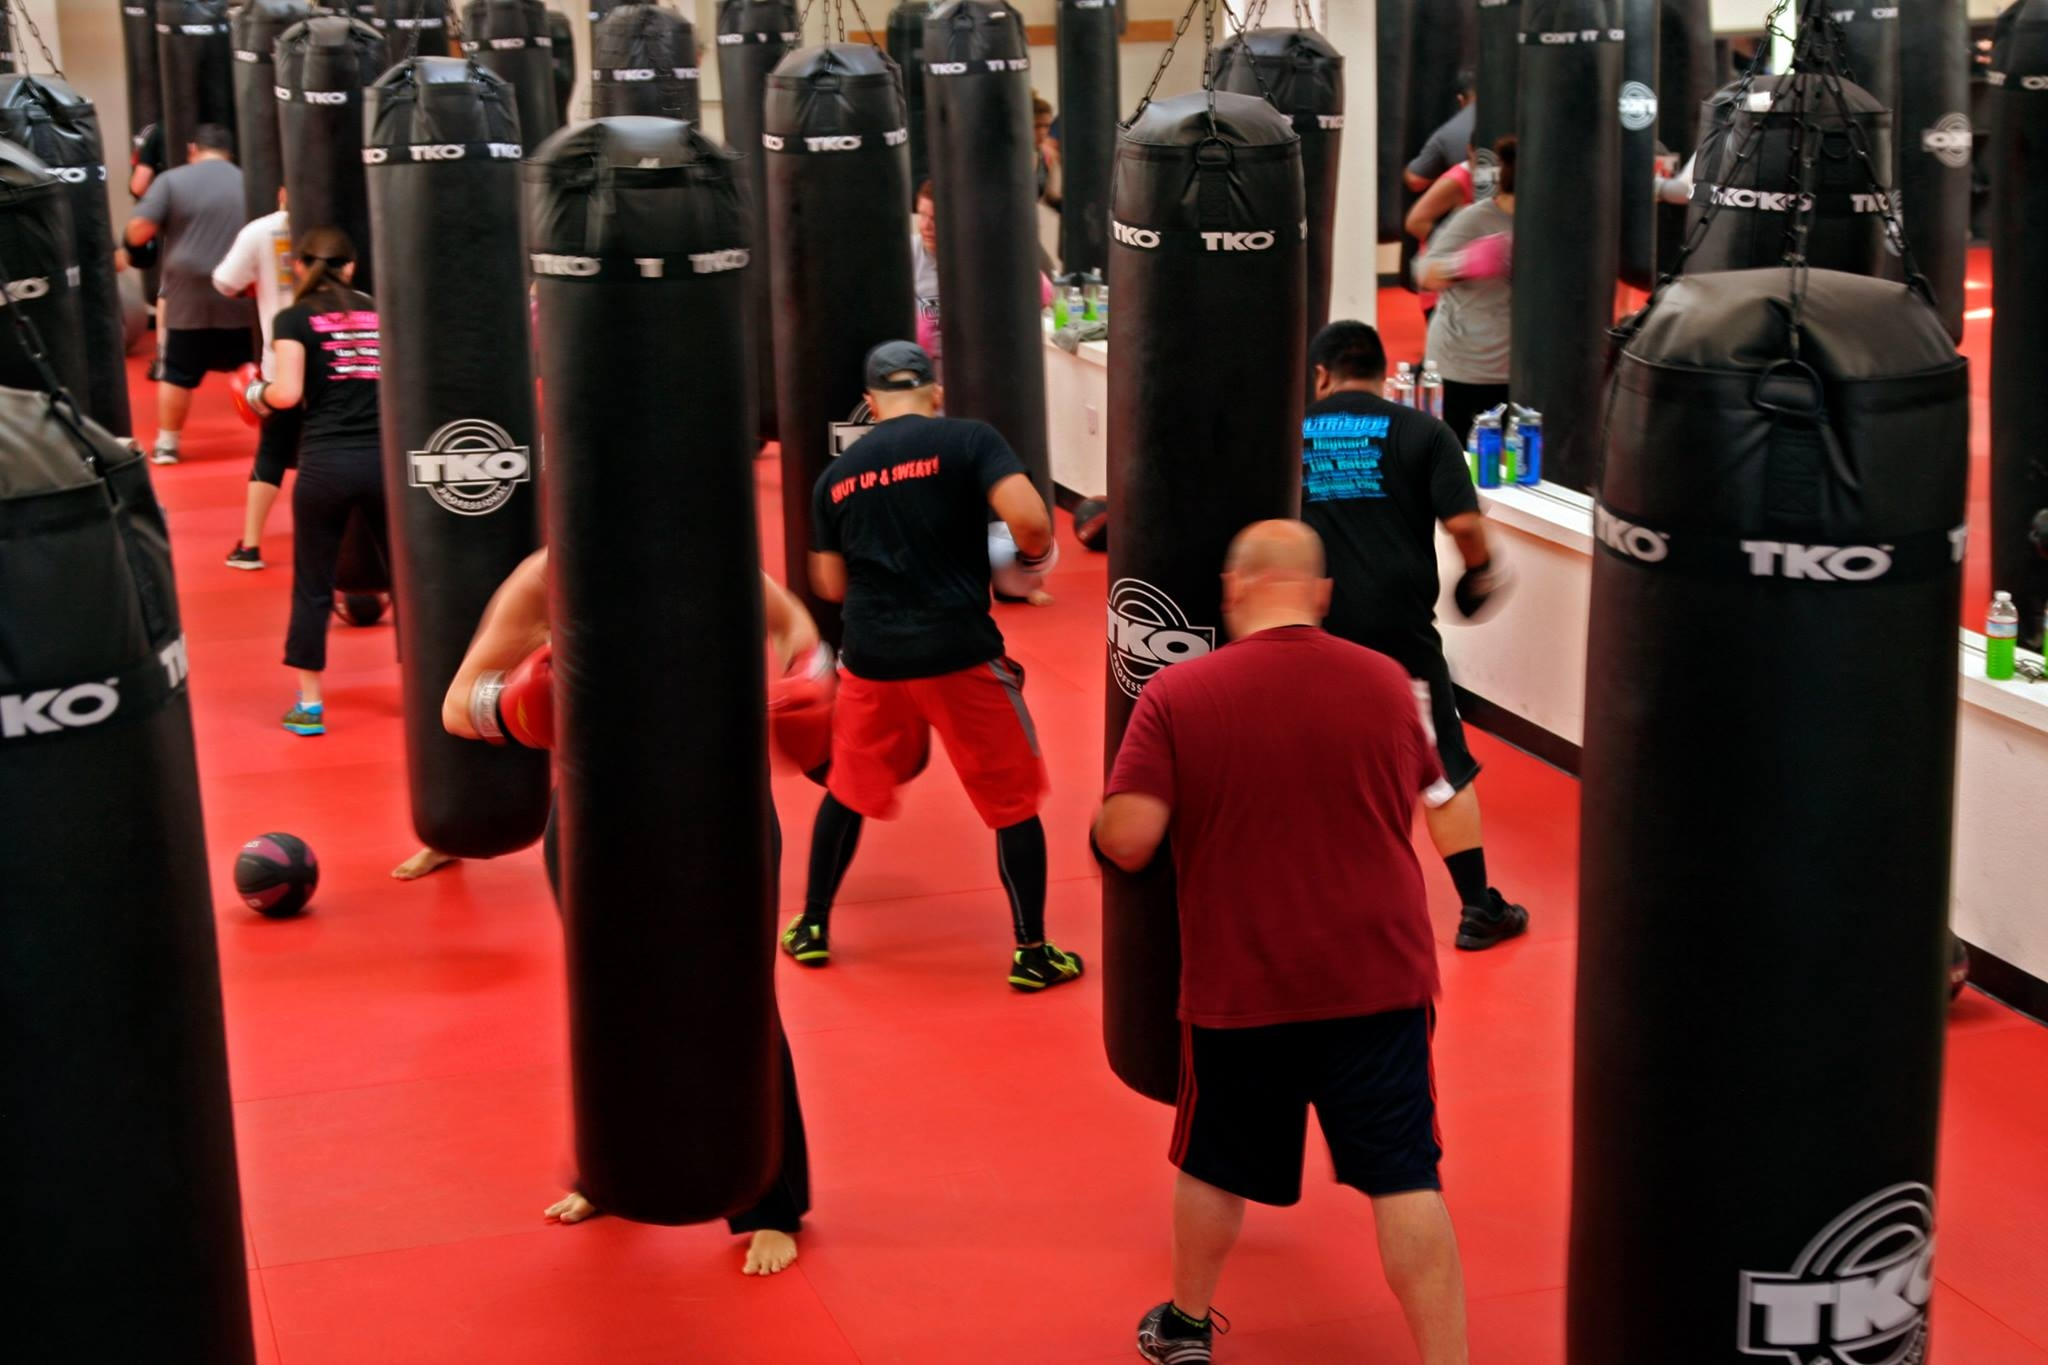 Sobekick  .Several of the local models I've worked with hit up this Emeryville boxing gym, so it's perfect if you're looking for that model-approved vibe.Check it out for boxing, kickboxing, self-defense, boot camp, and yoga.